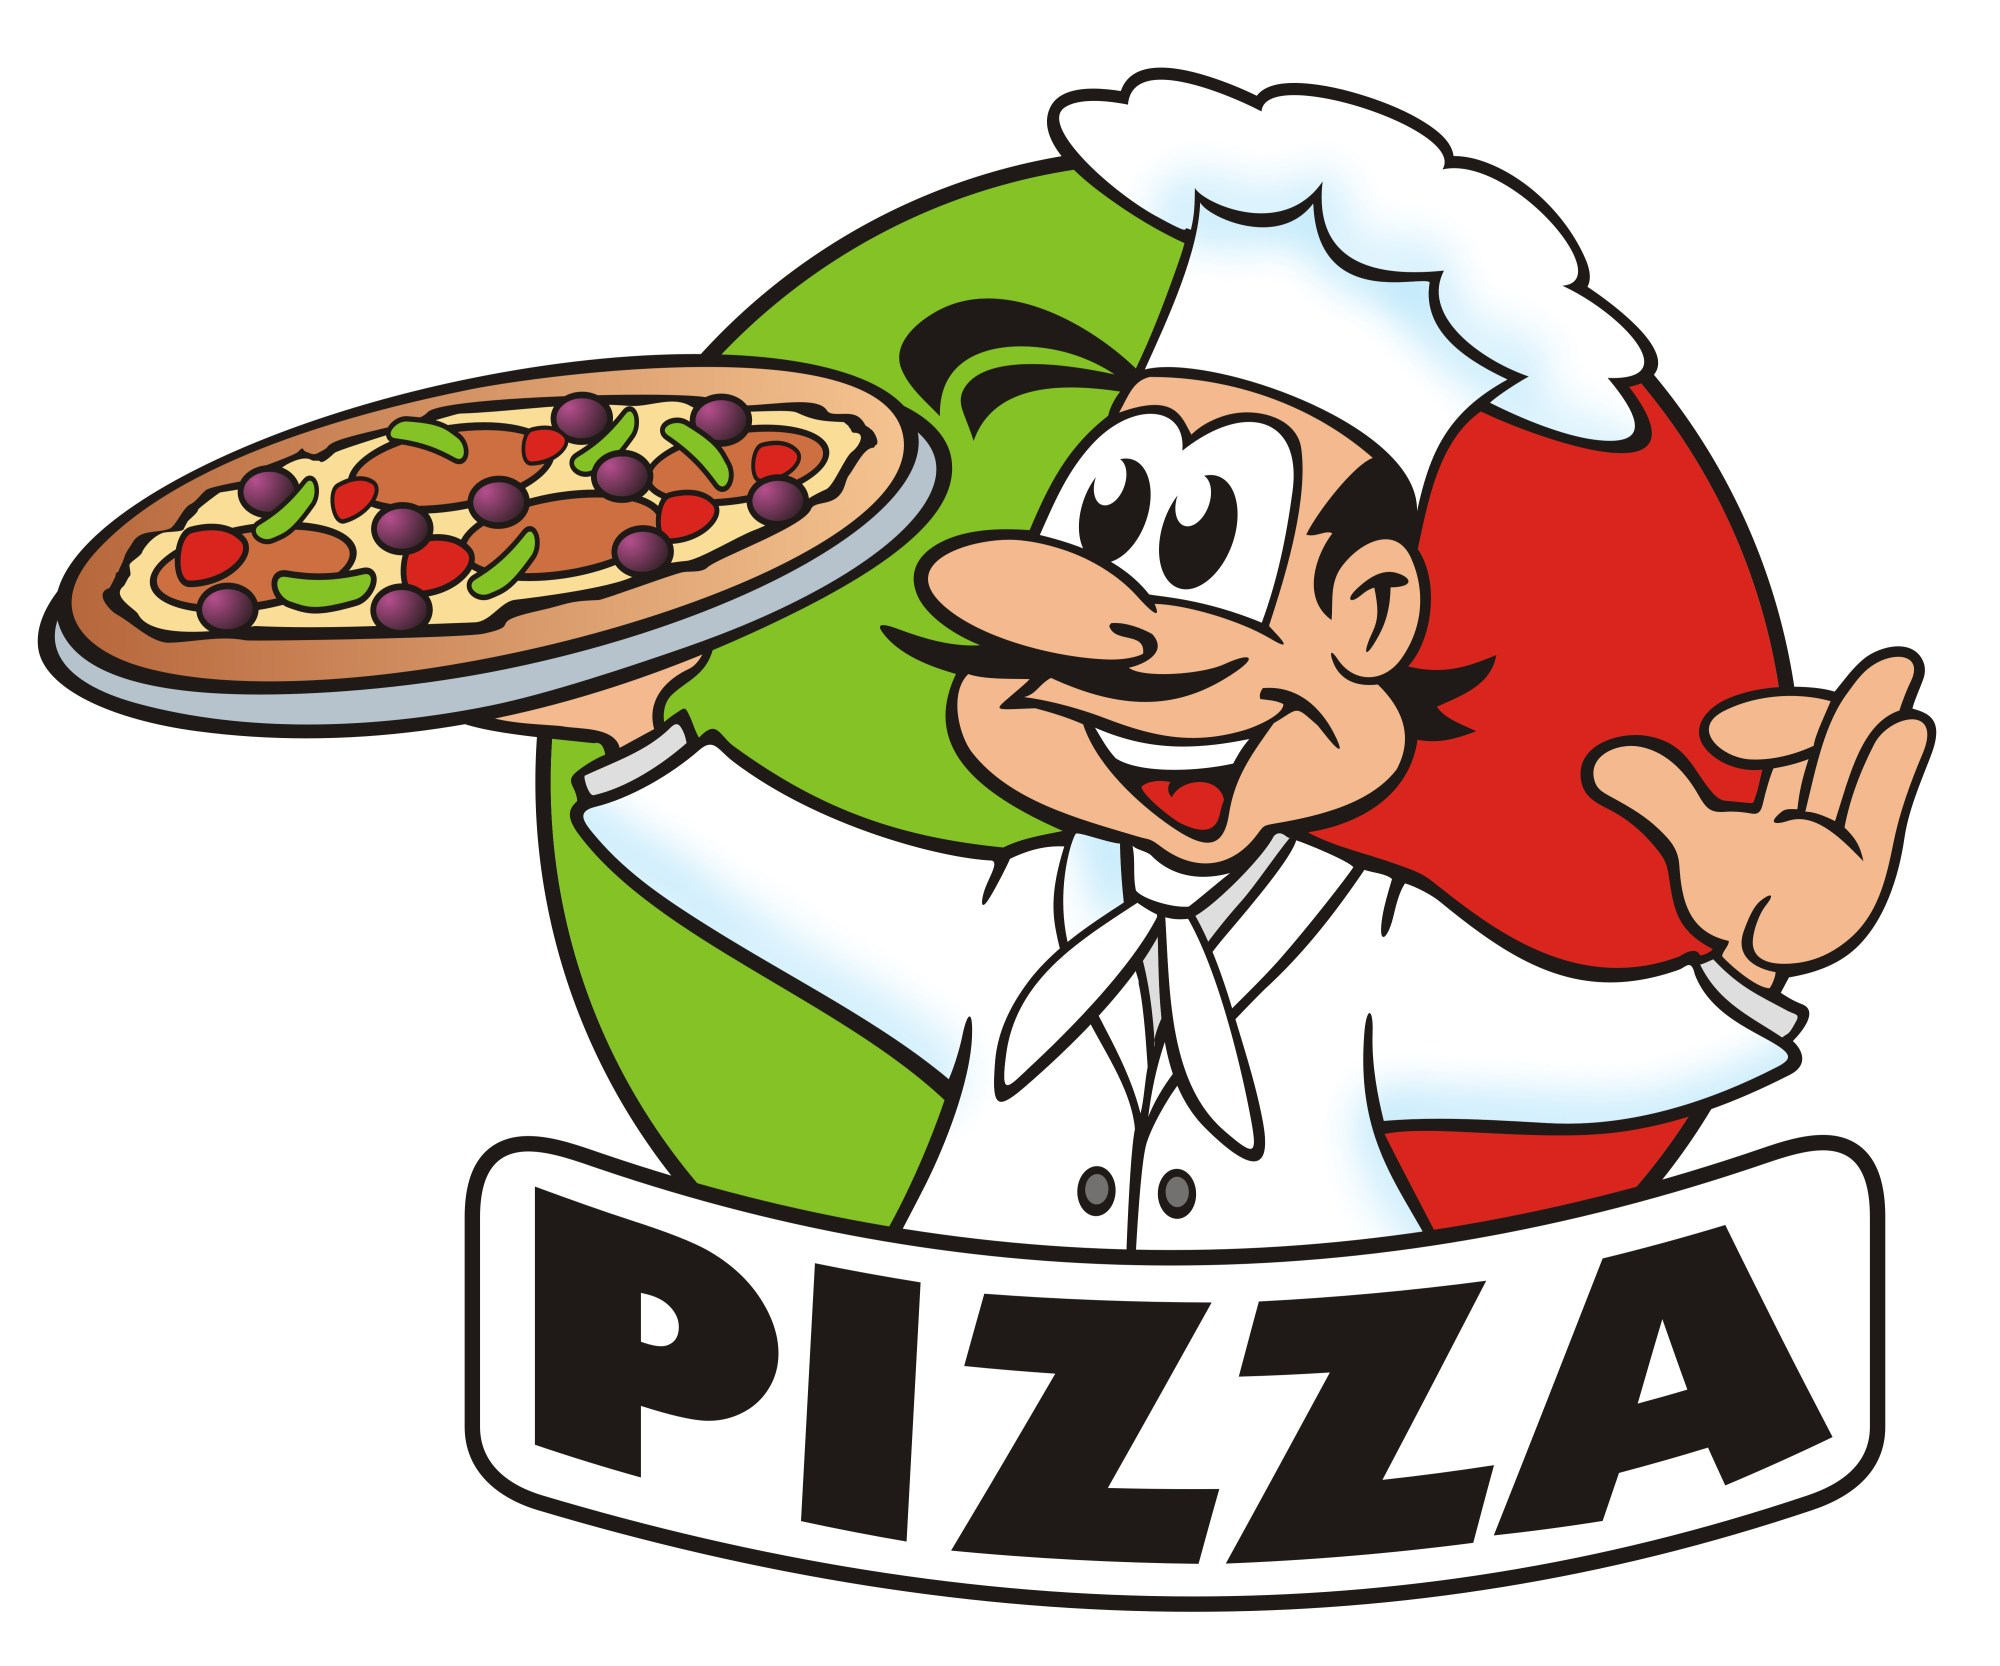 Of free download png. Pizza clipart pizza restaurant